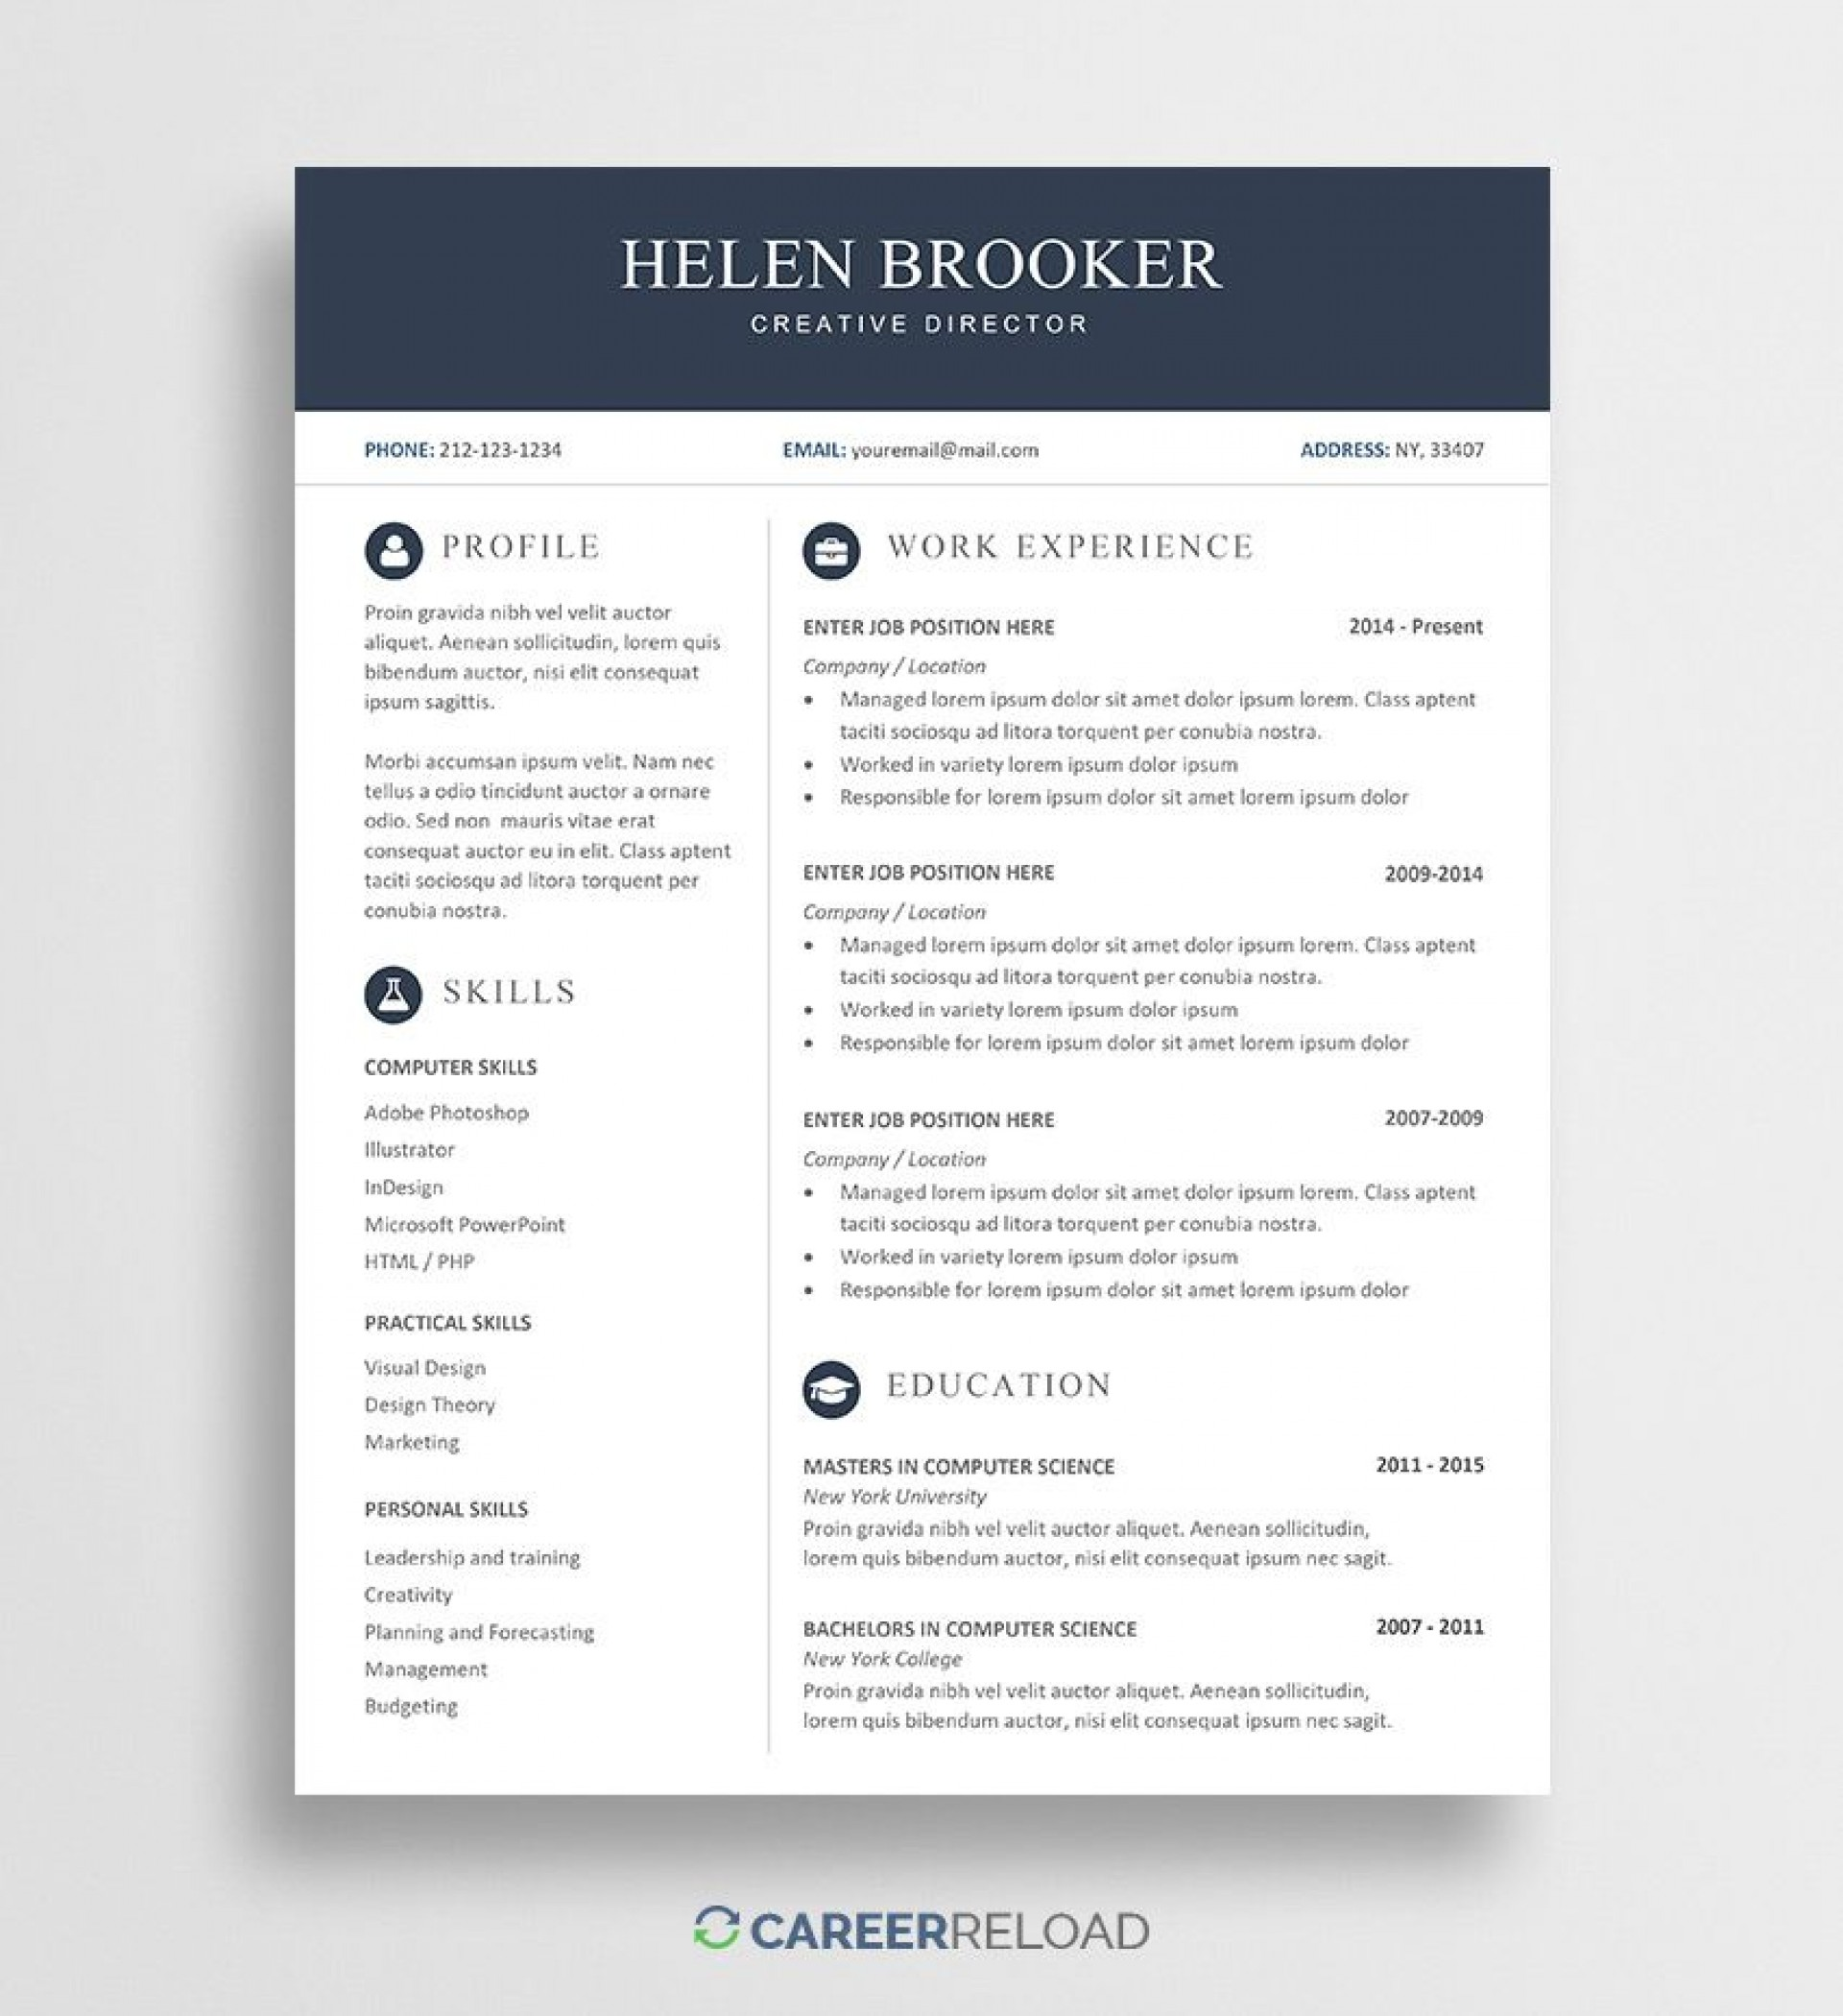 004 Stupendou Download Resume Template Word 2007 Sample 1920